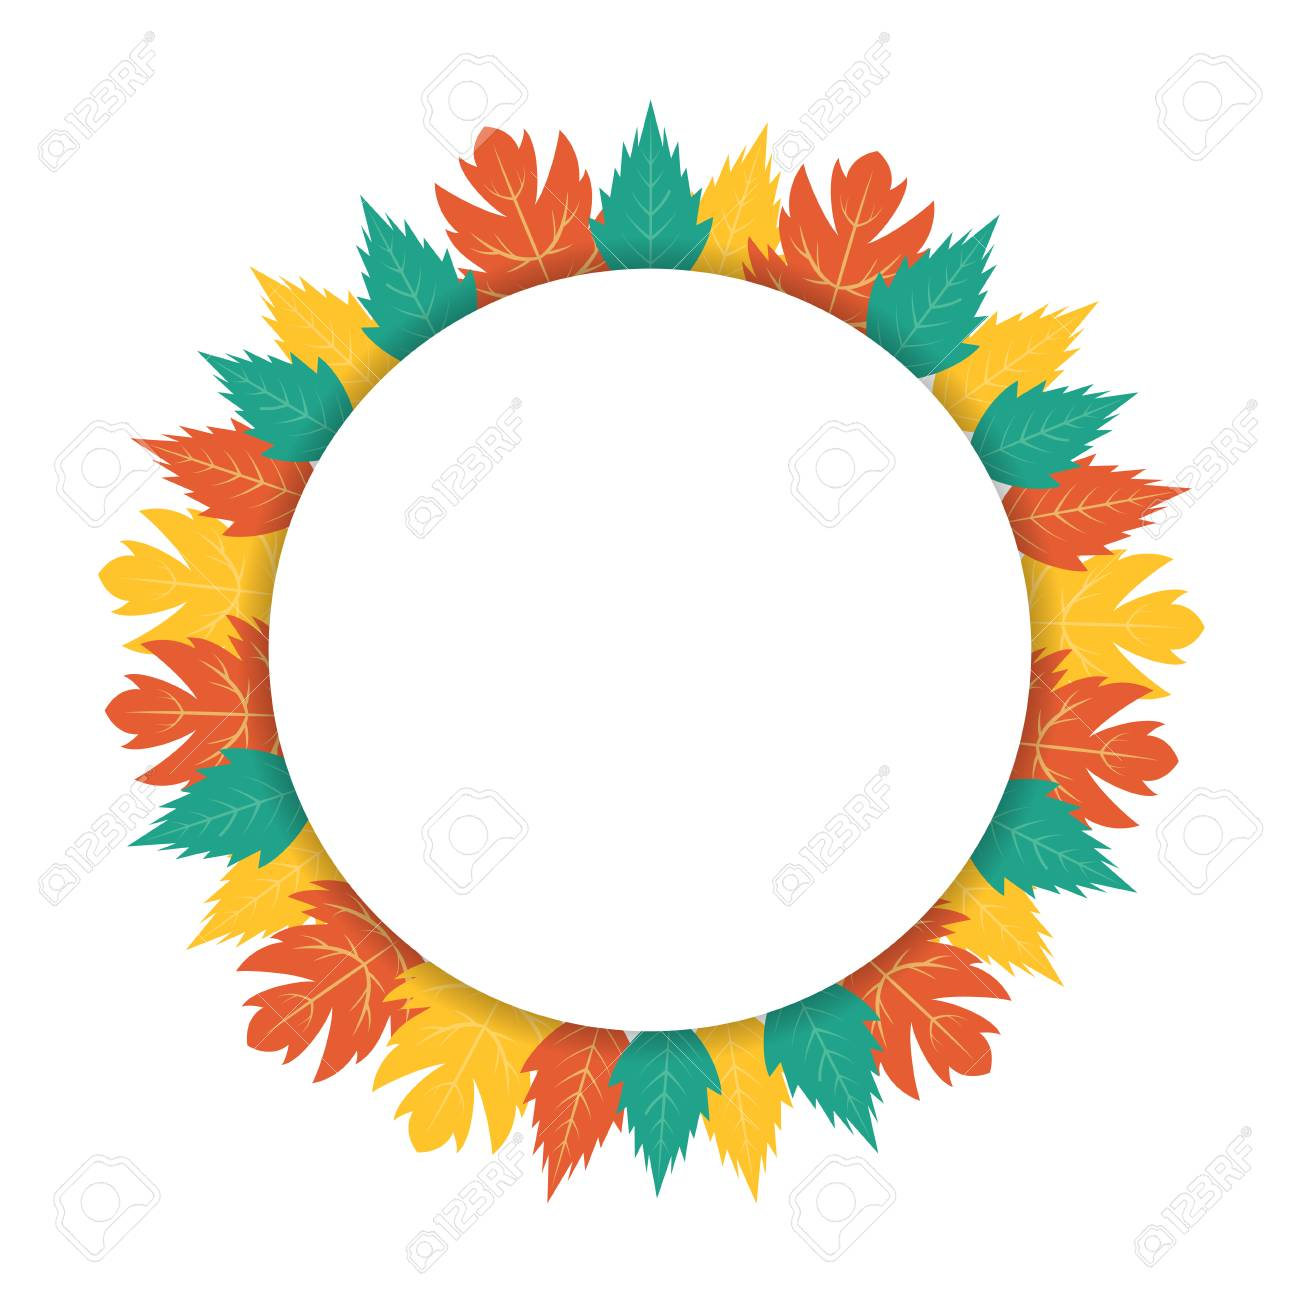 autumn leaves circular banner with copy space royalty free cliparts